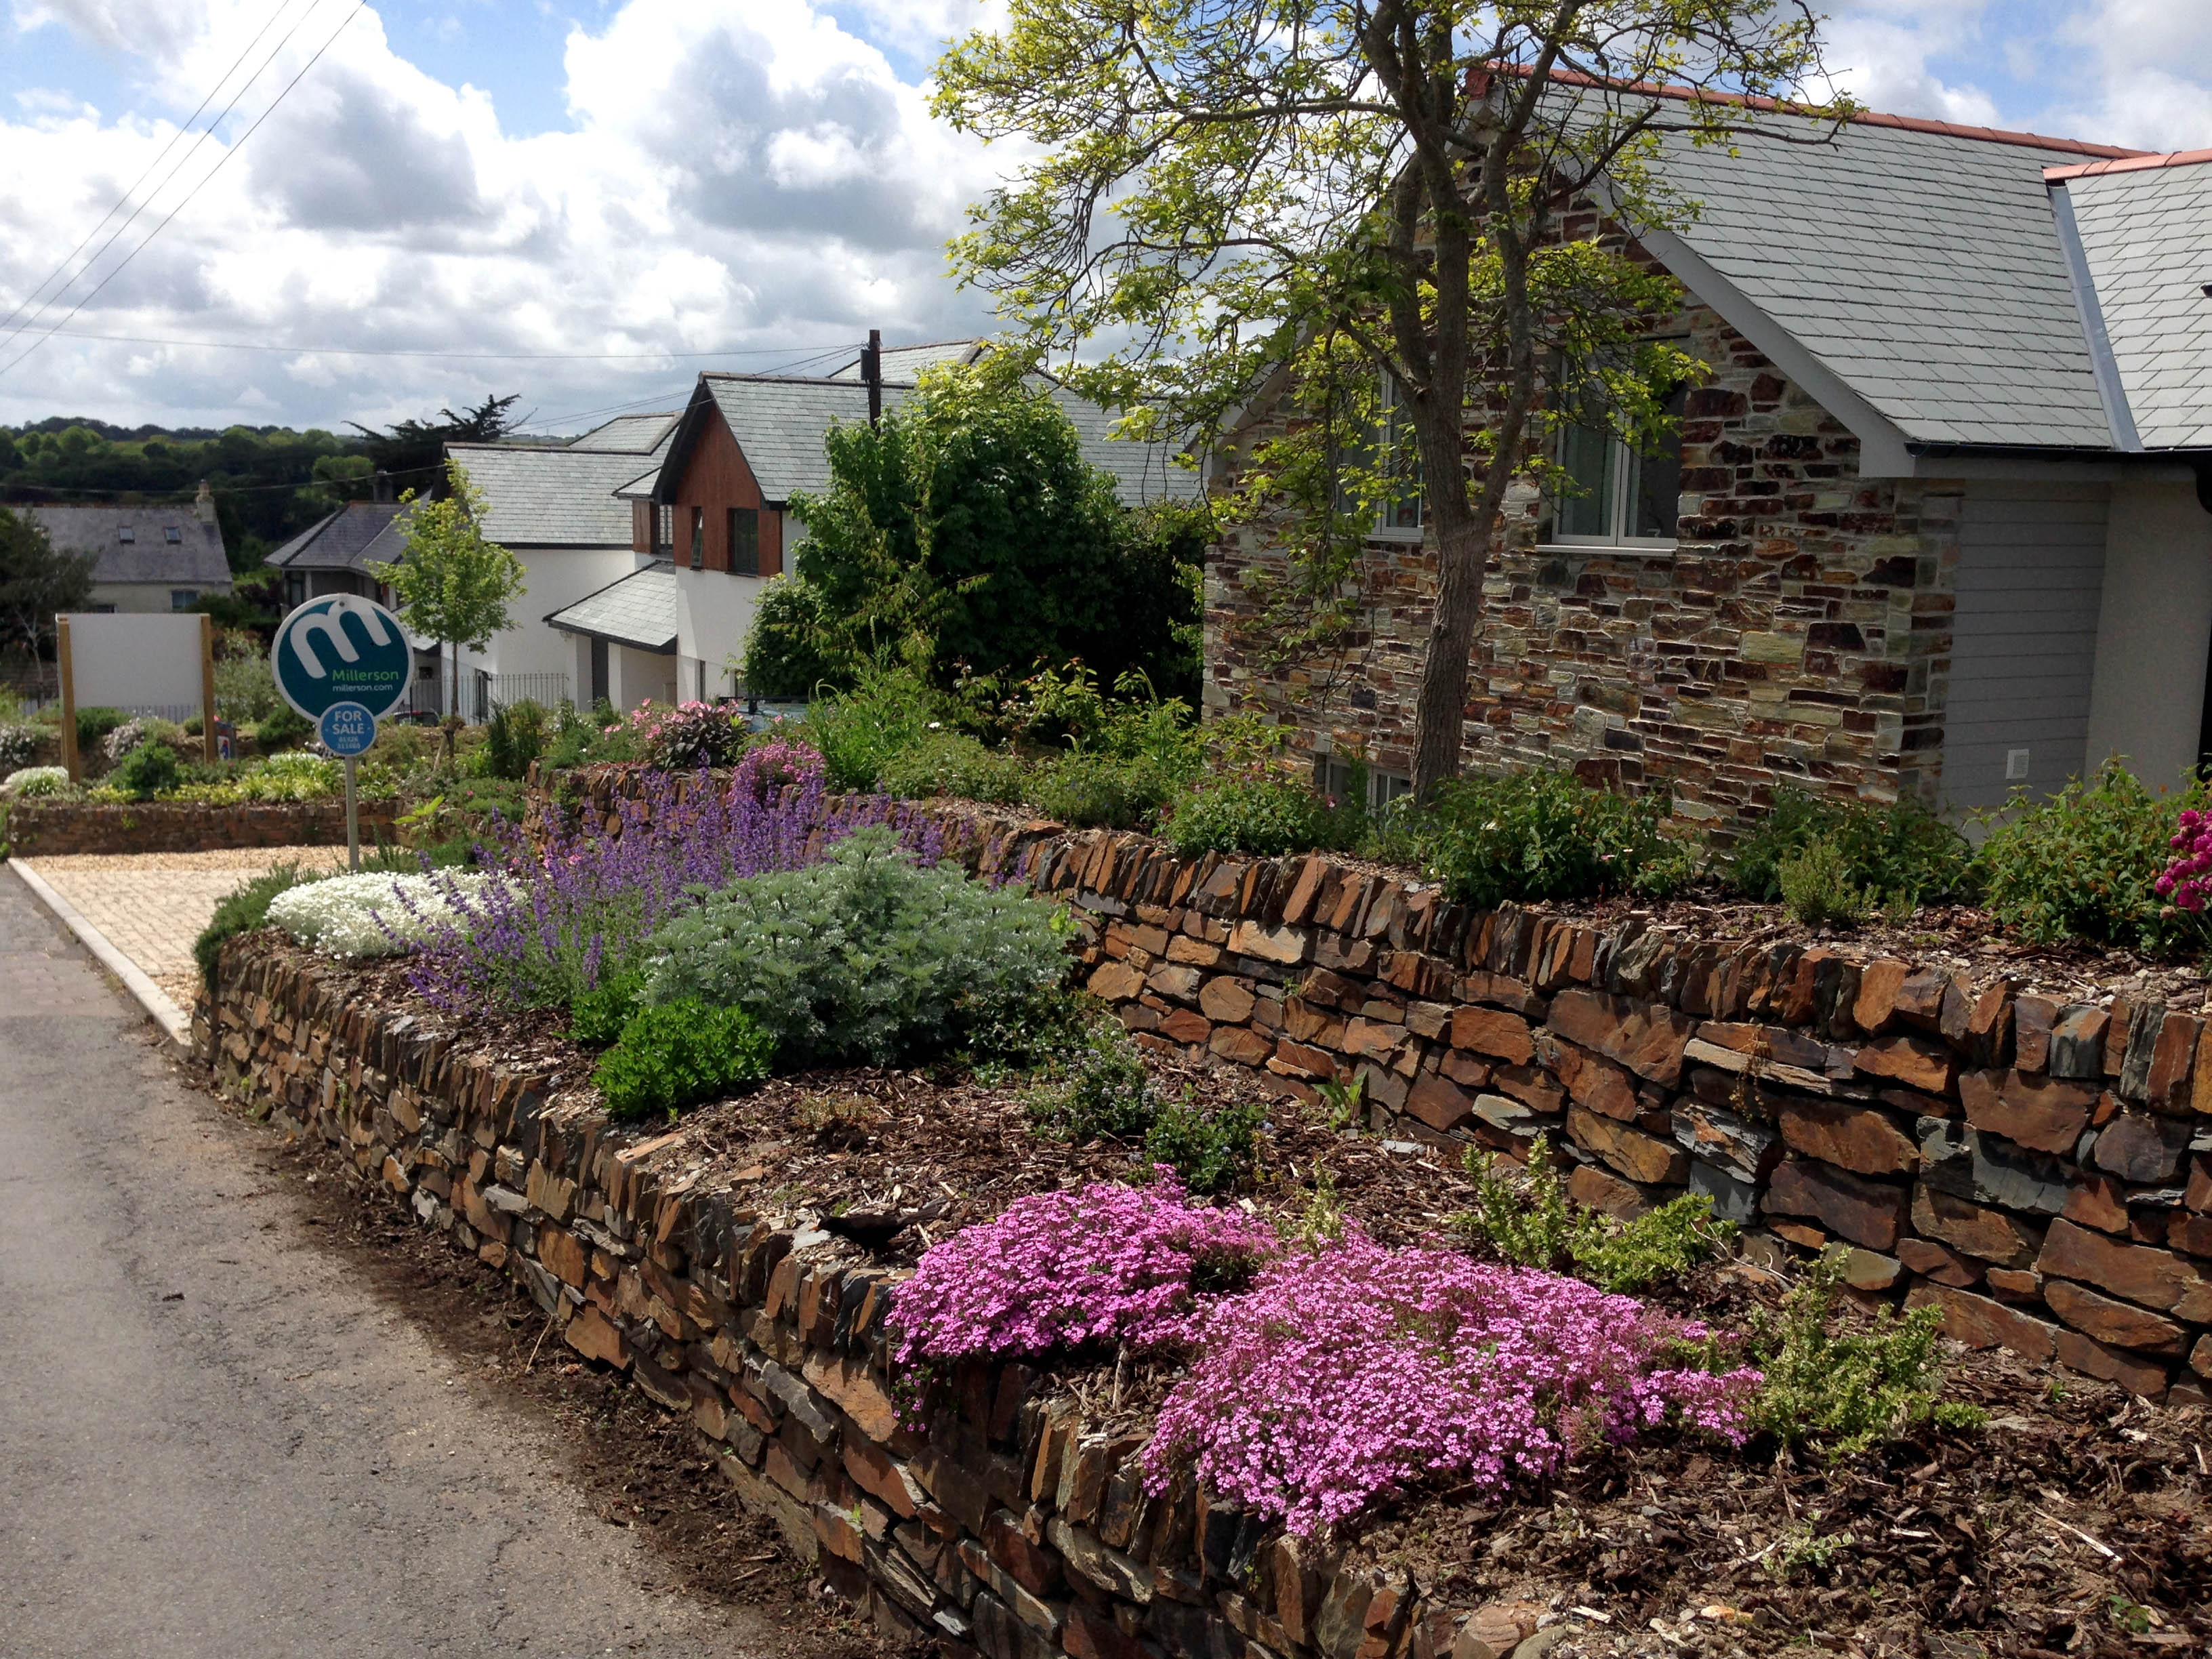 Rosemary cottages view  along boundary wall